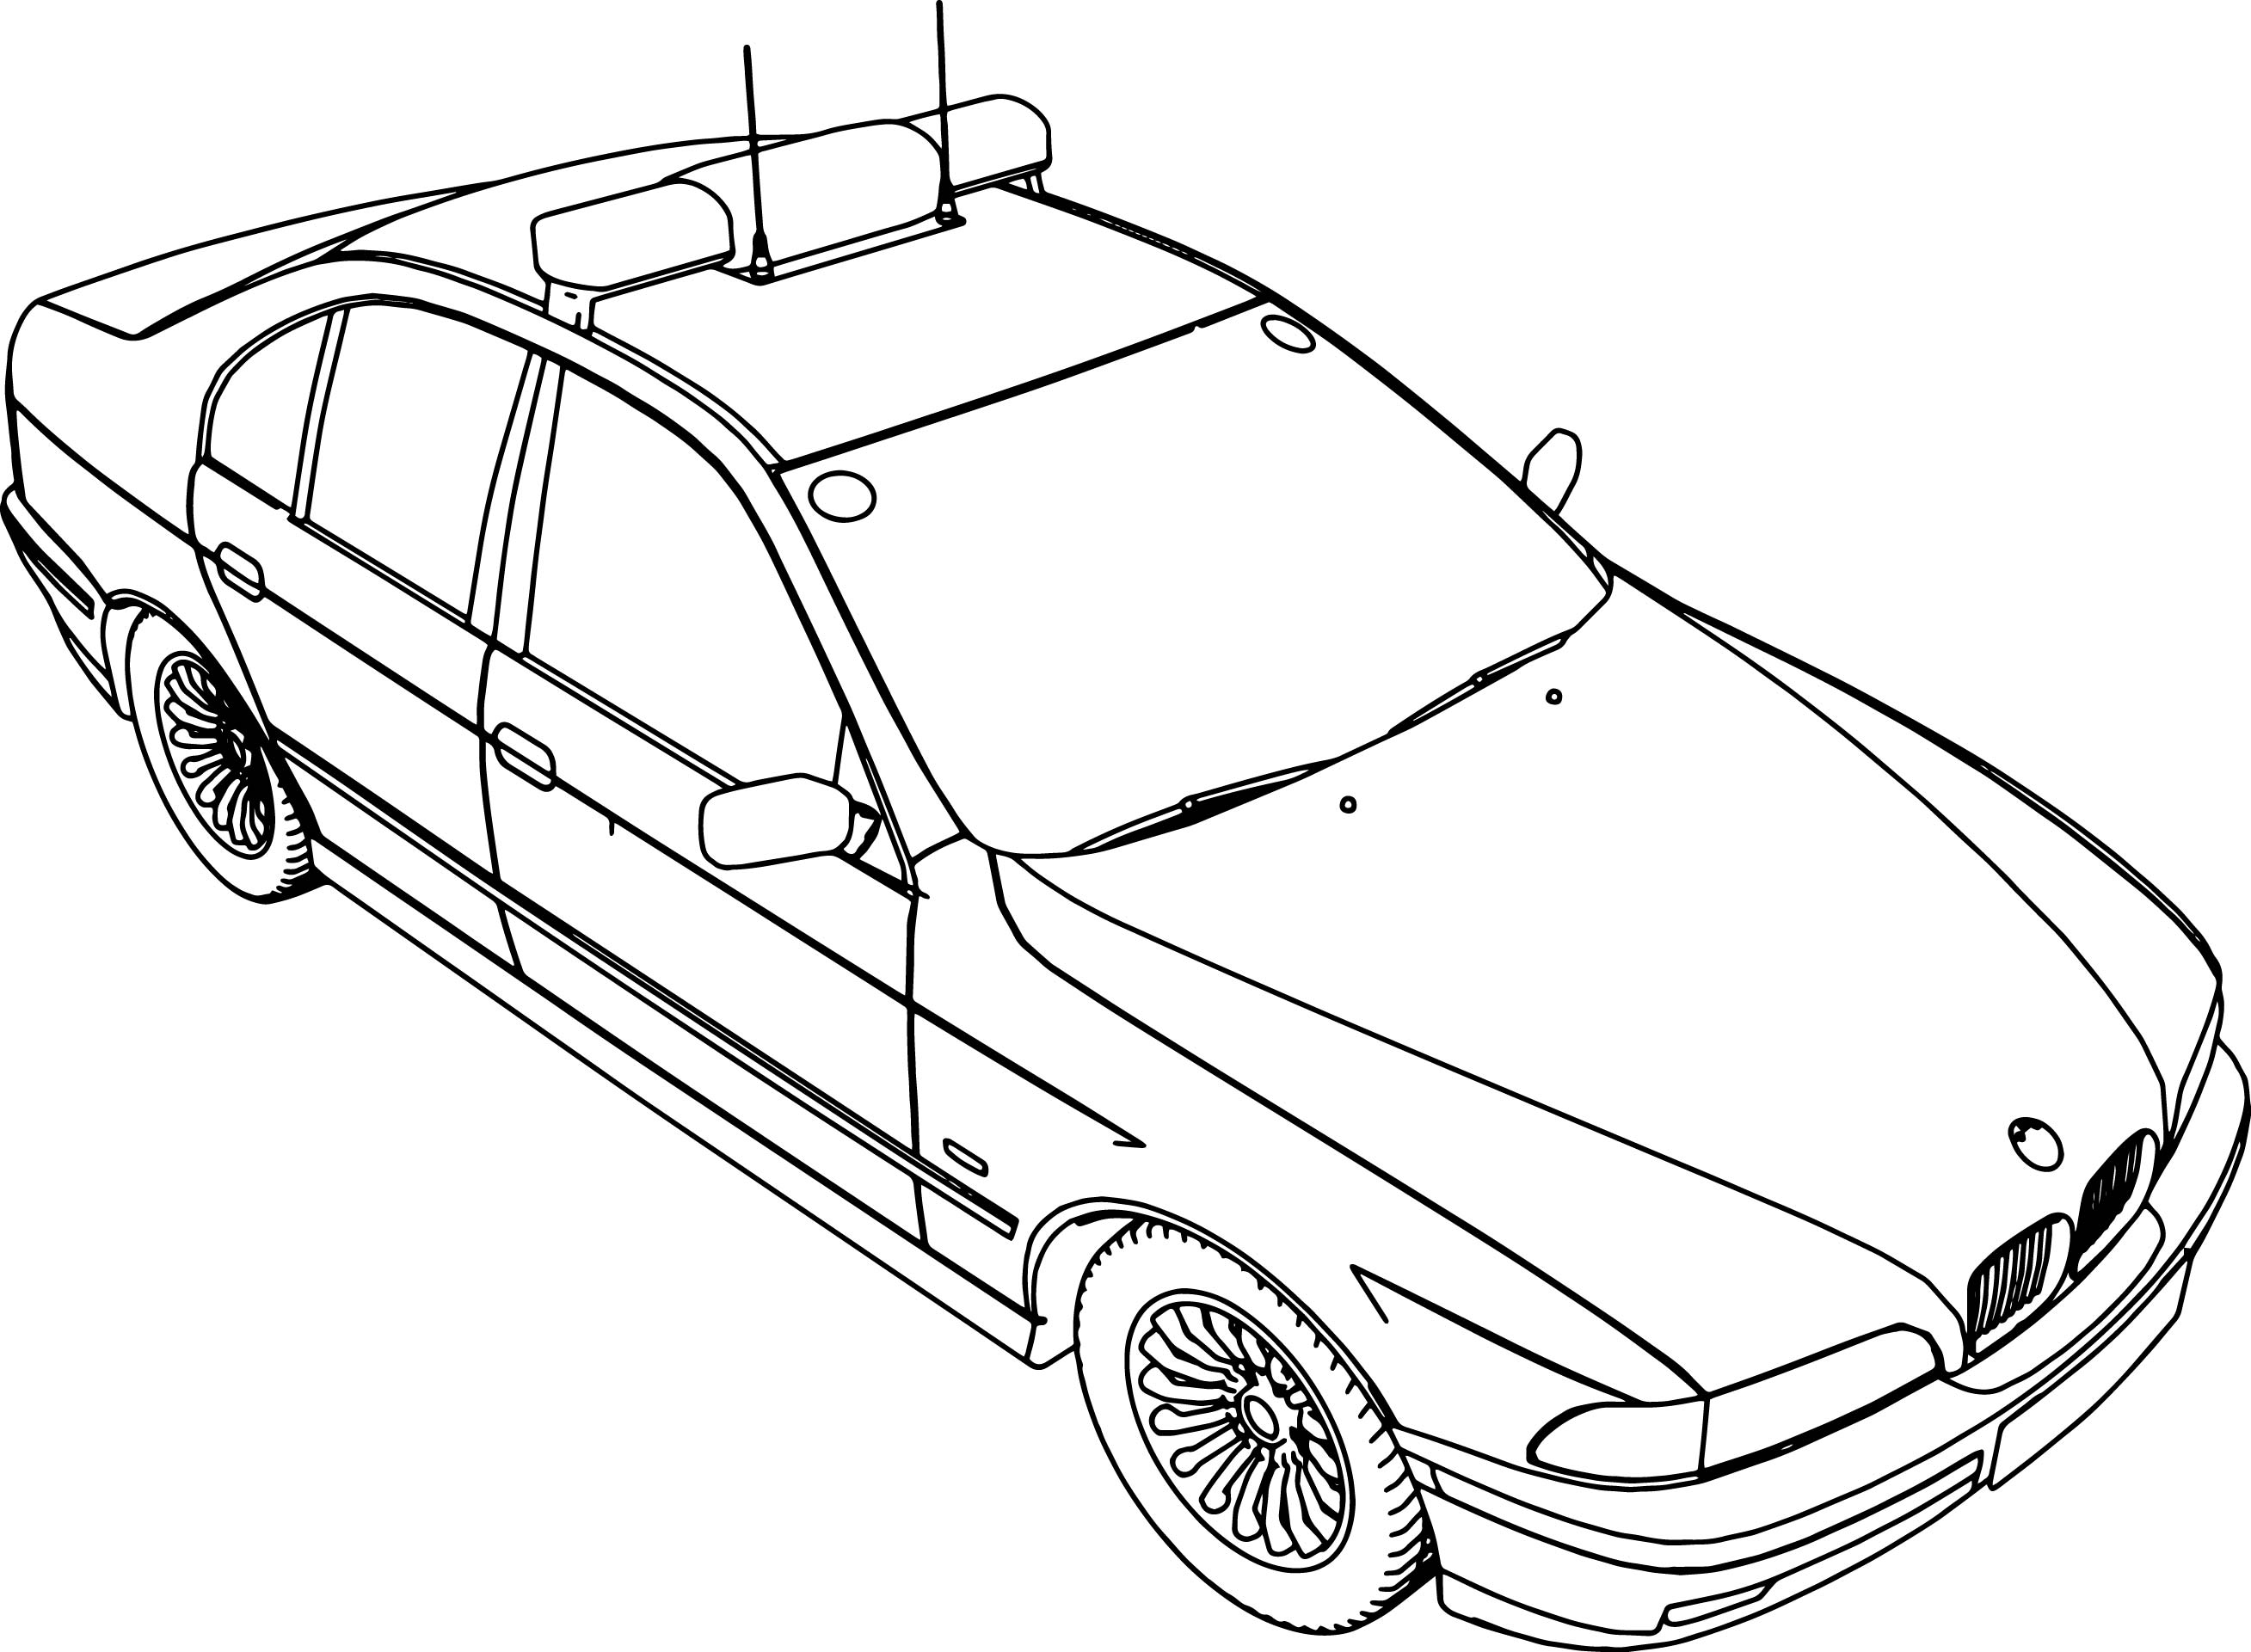 Police cars free colouring pages for Police car coloring pages to print